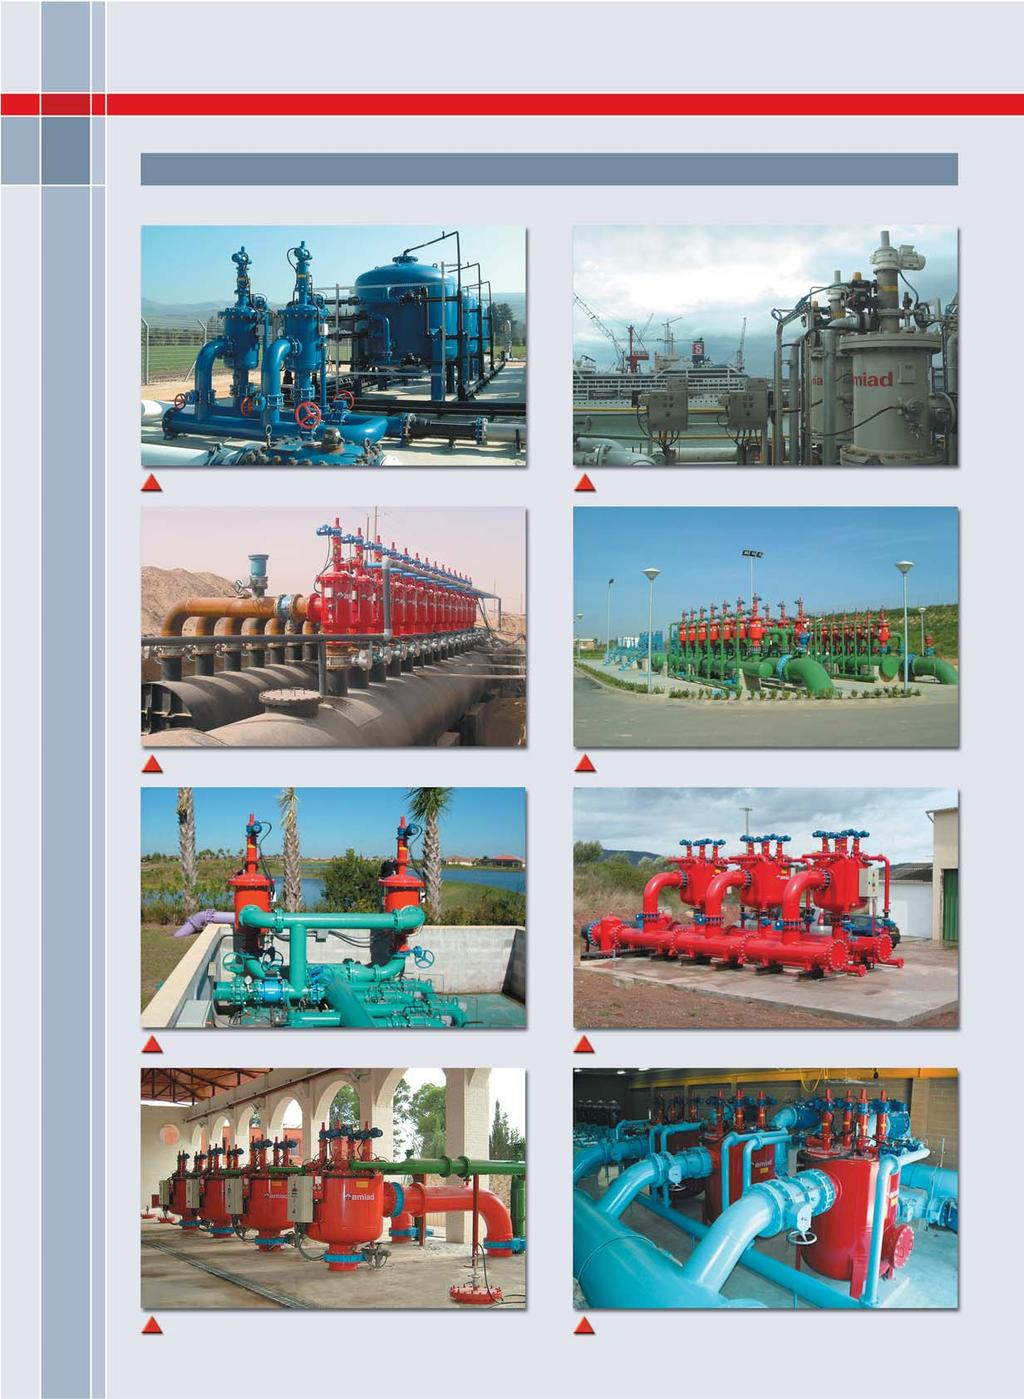 SELECTED WORLDWIDE APPLICATIONS Pre-filtration to DWTP. 1,650gpm, 50 m. Dan river, Israel Injection water on board FPSO. 970gpm, 25 m. West Africa Drip irrigation. 40,000gpm, 130 m.